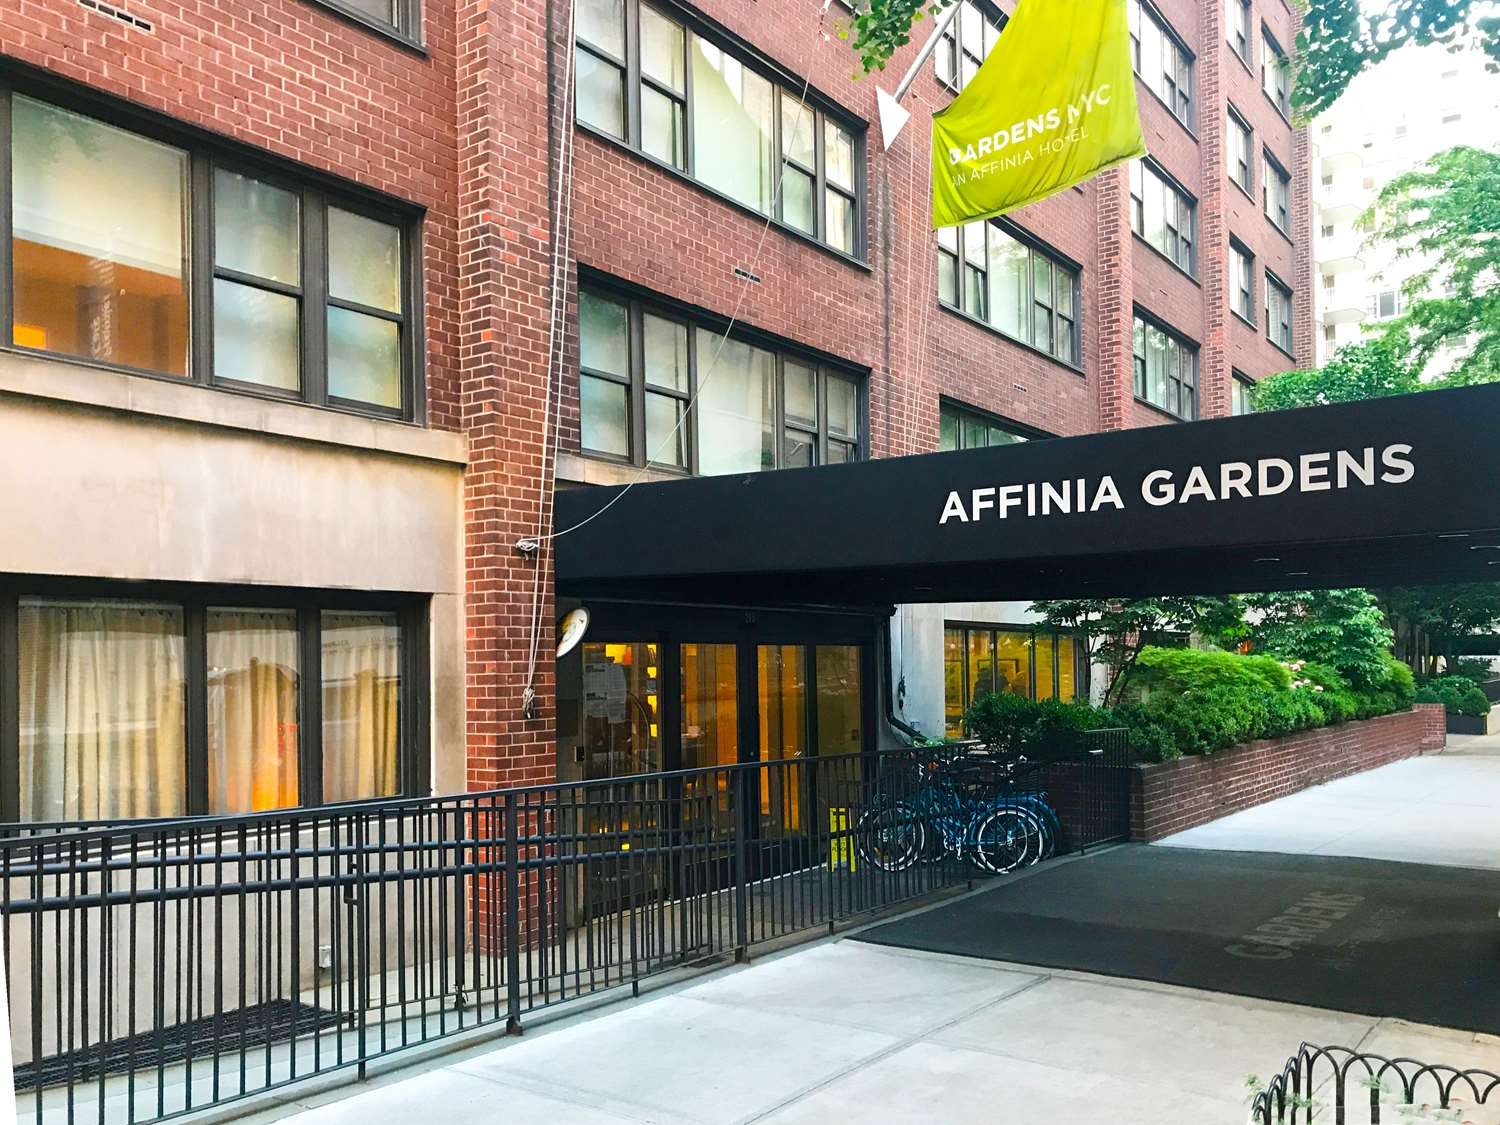 Affinia Gardens Hotel New York City